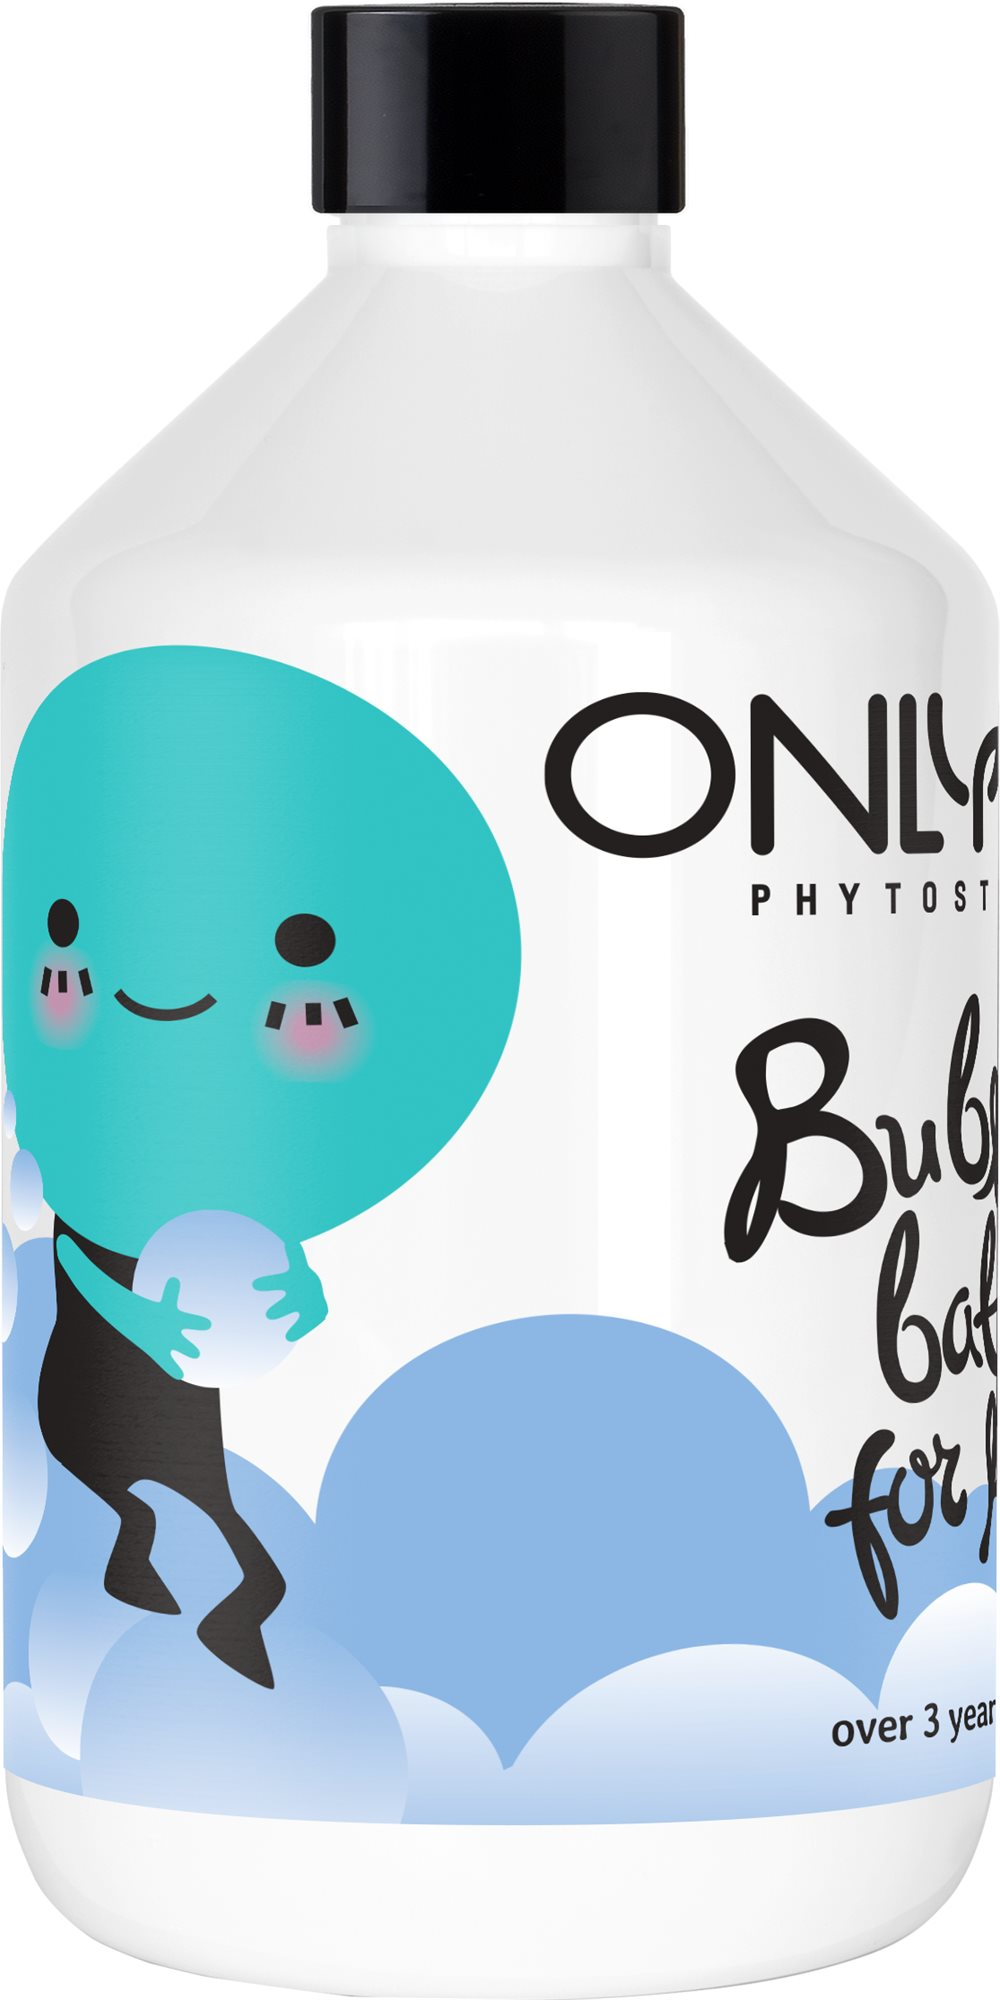 ONLYBIO Fitosterol For Kids (500 ml)